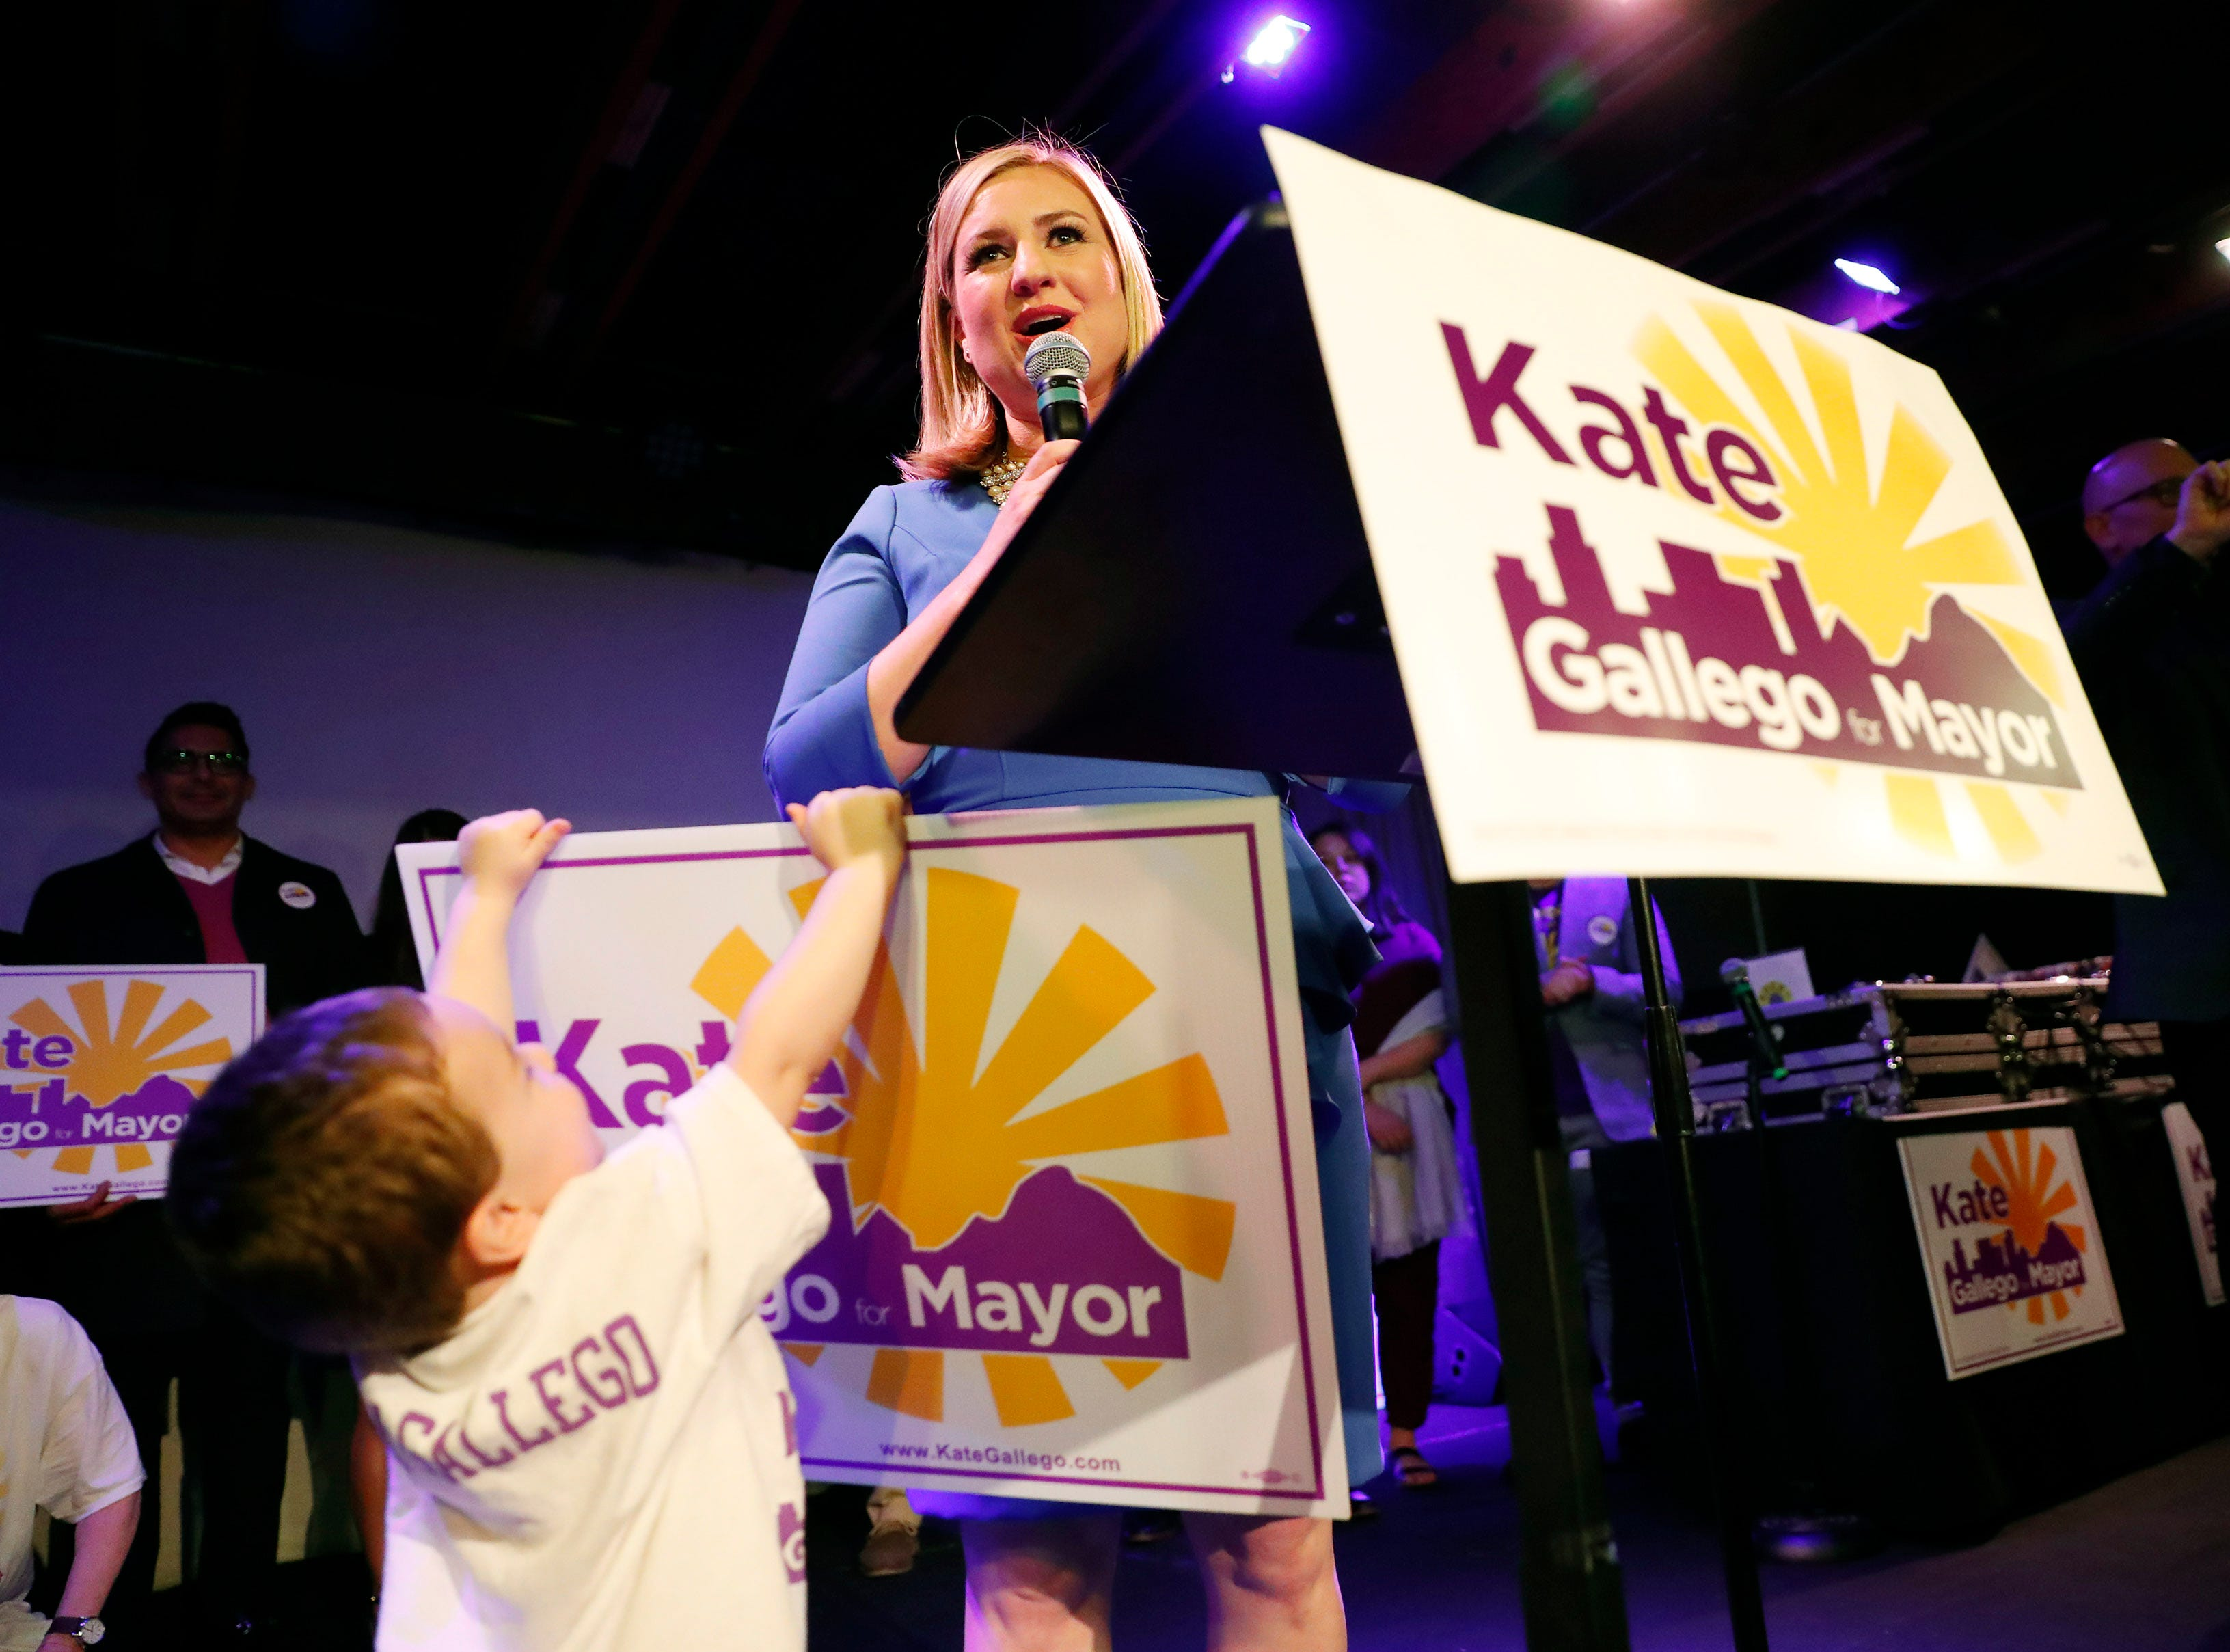 Democrat Kate Gallego talks to supporters as her son, Michael, approaches with a campaign sign during an election-night party at Crescent Ballroom in Phoenix on March 12, 2019.